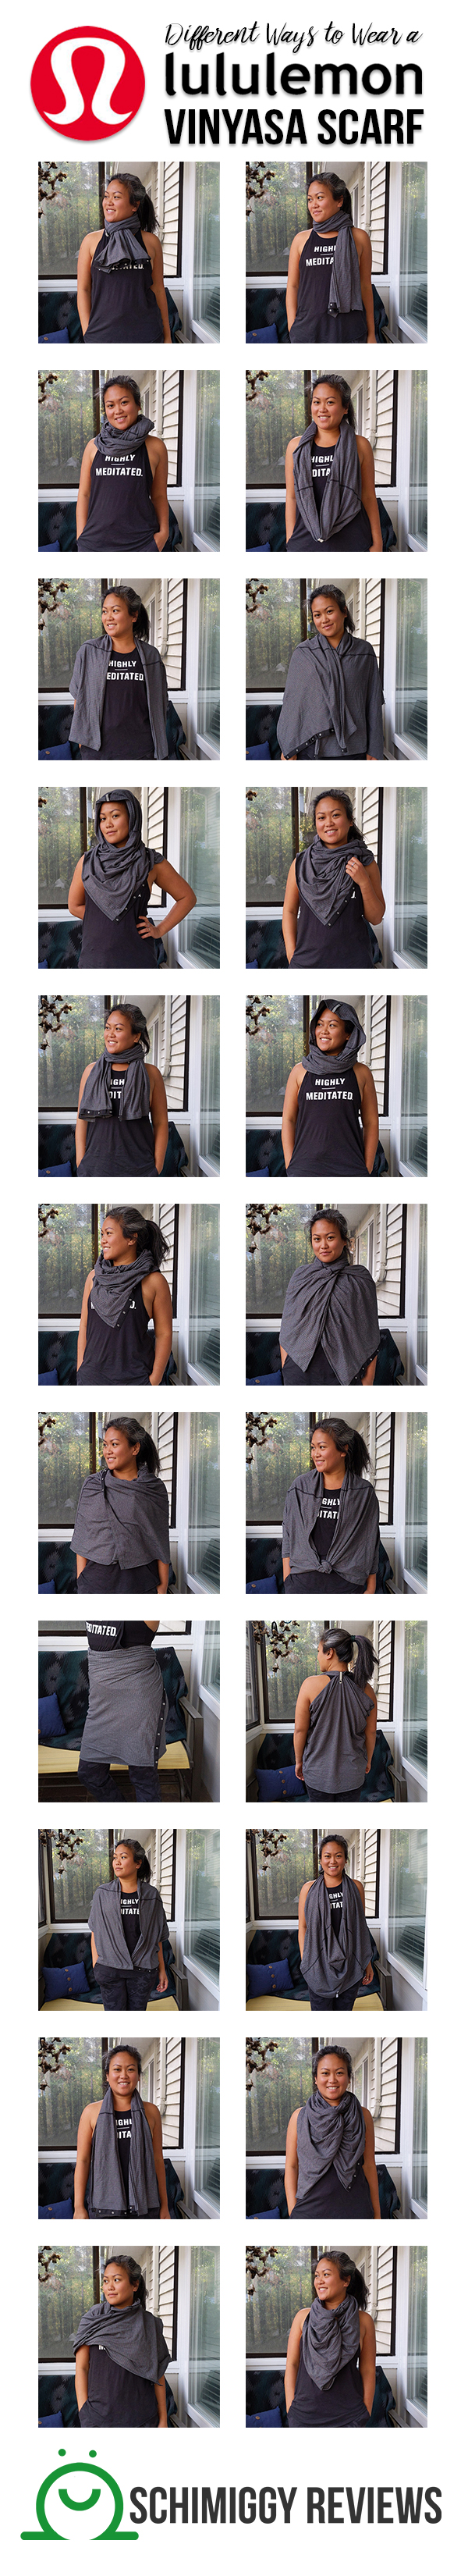 Different Ways to Wear a lululemon Vinyasa Scarf | Schimiggy Reviews